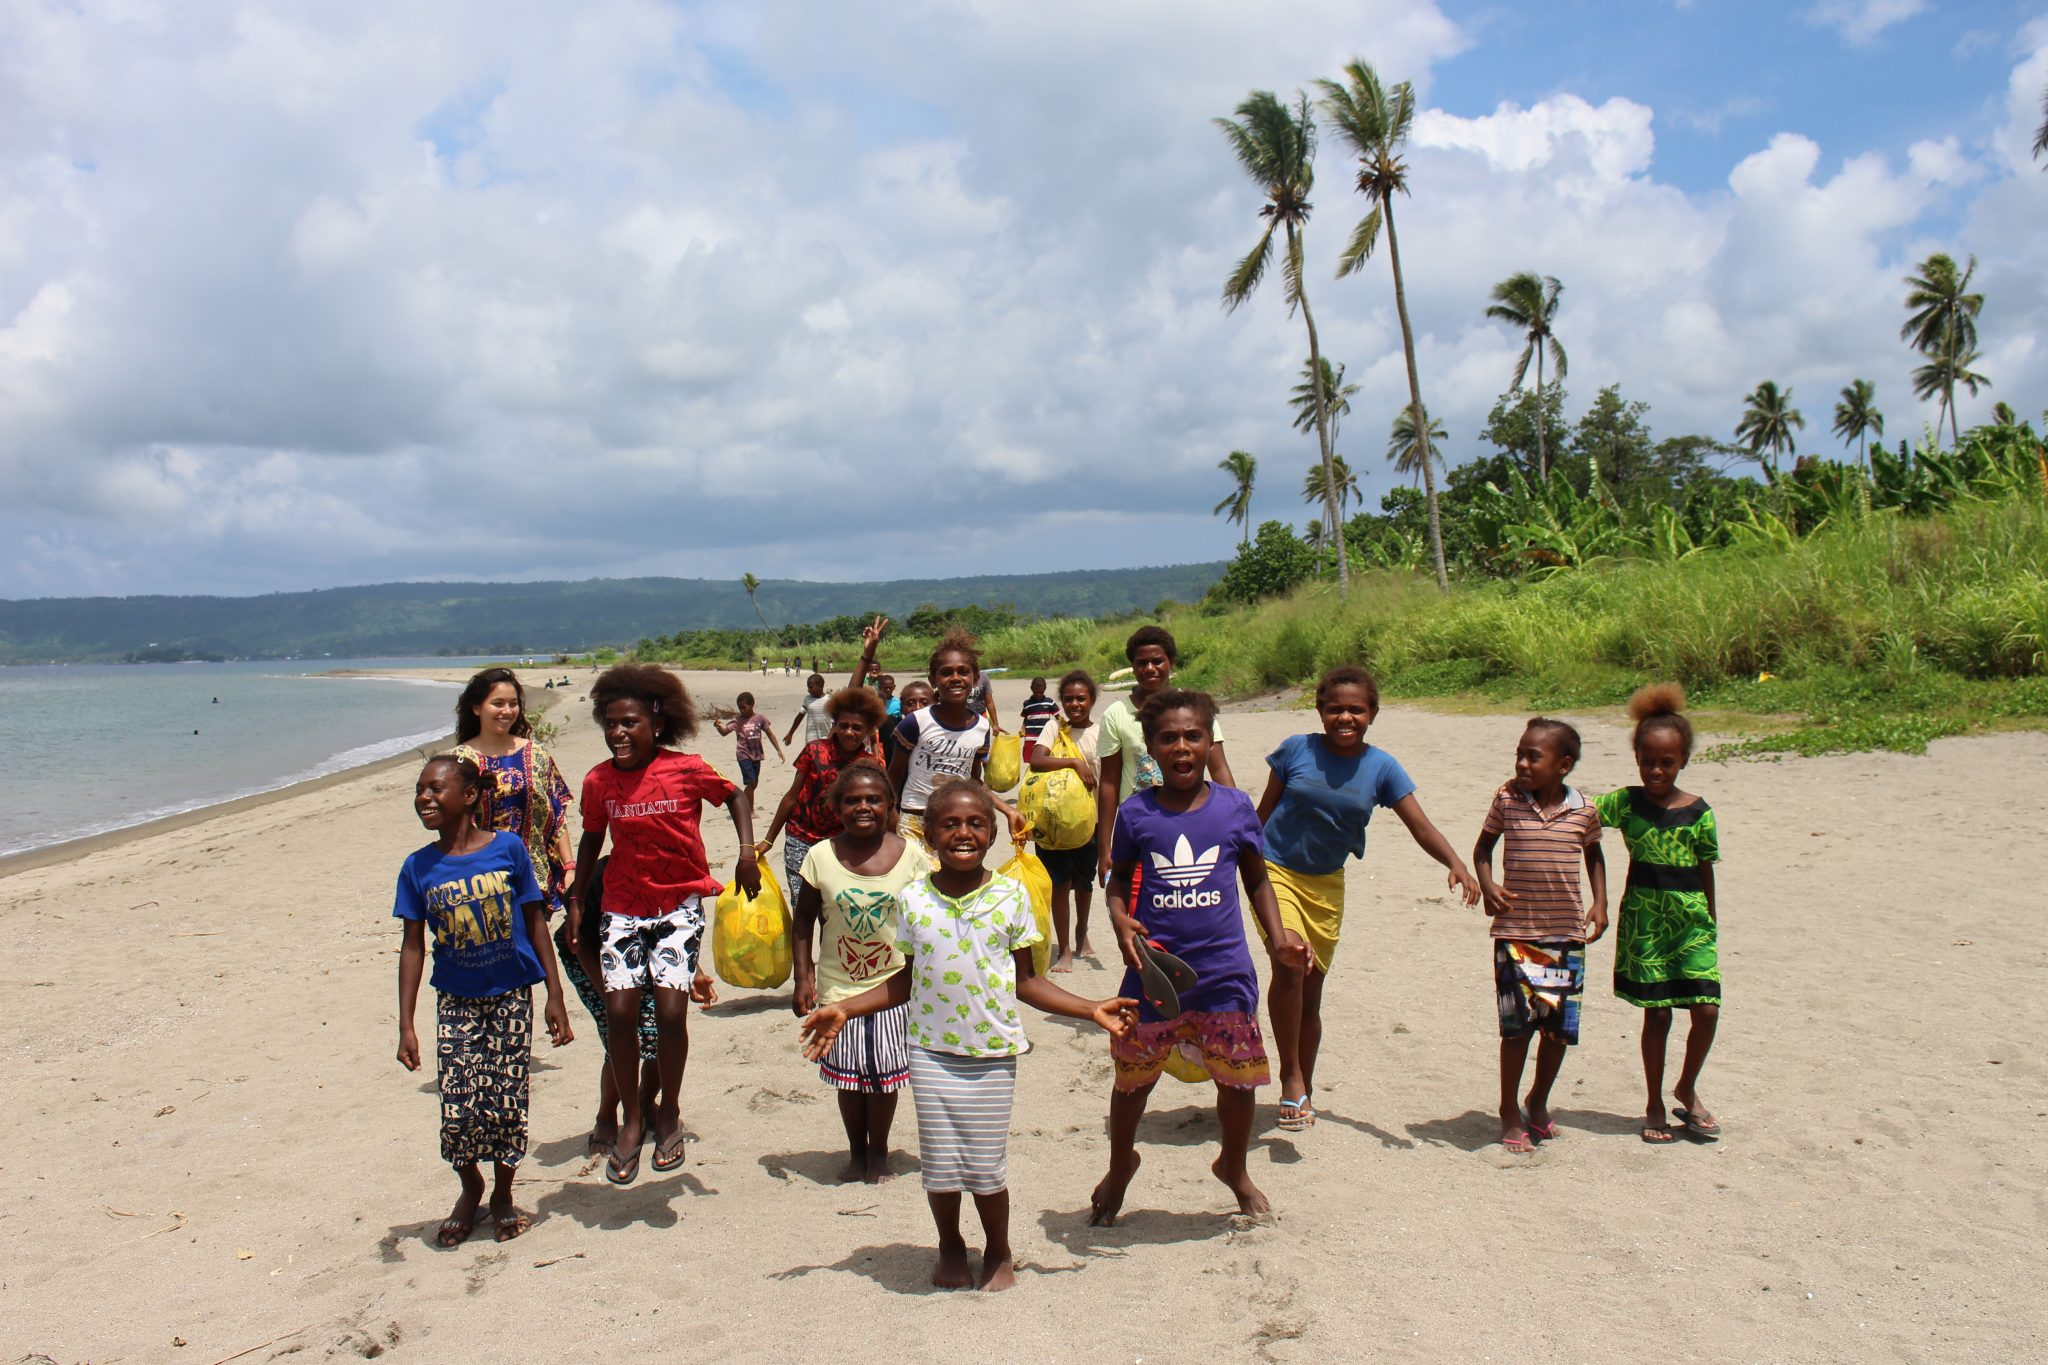 come volunteer in vanuatu and enjoy this beach with kids